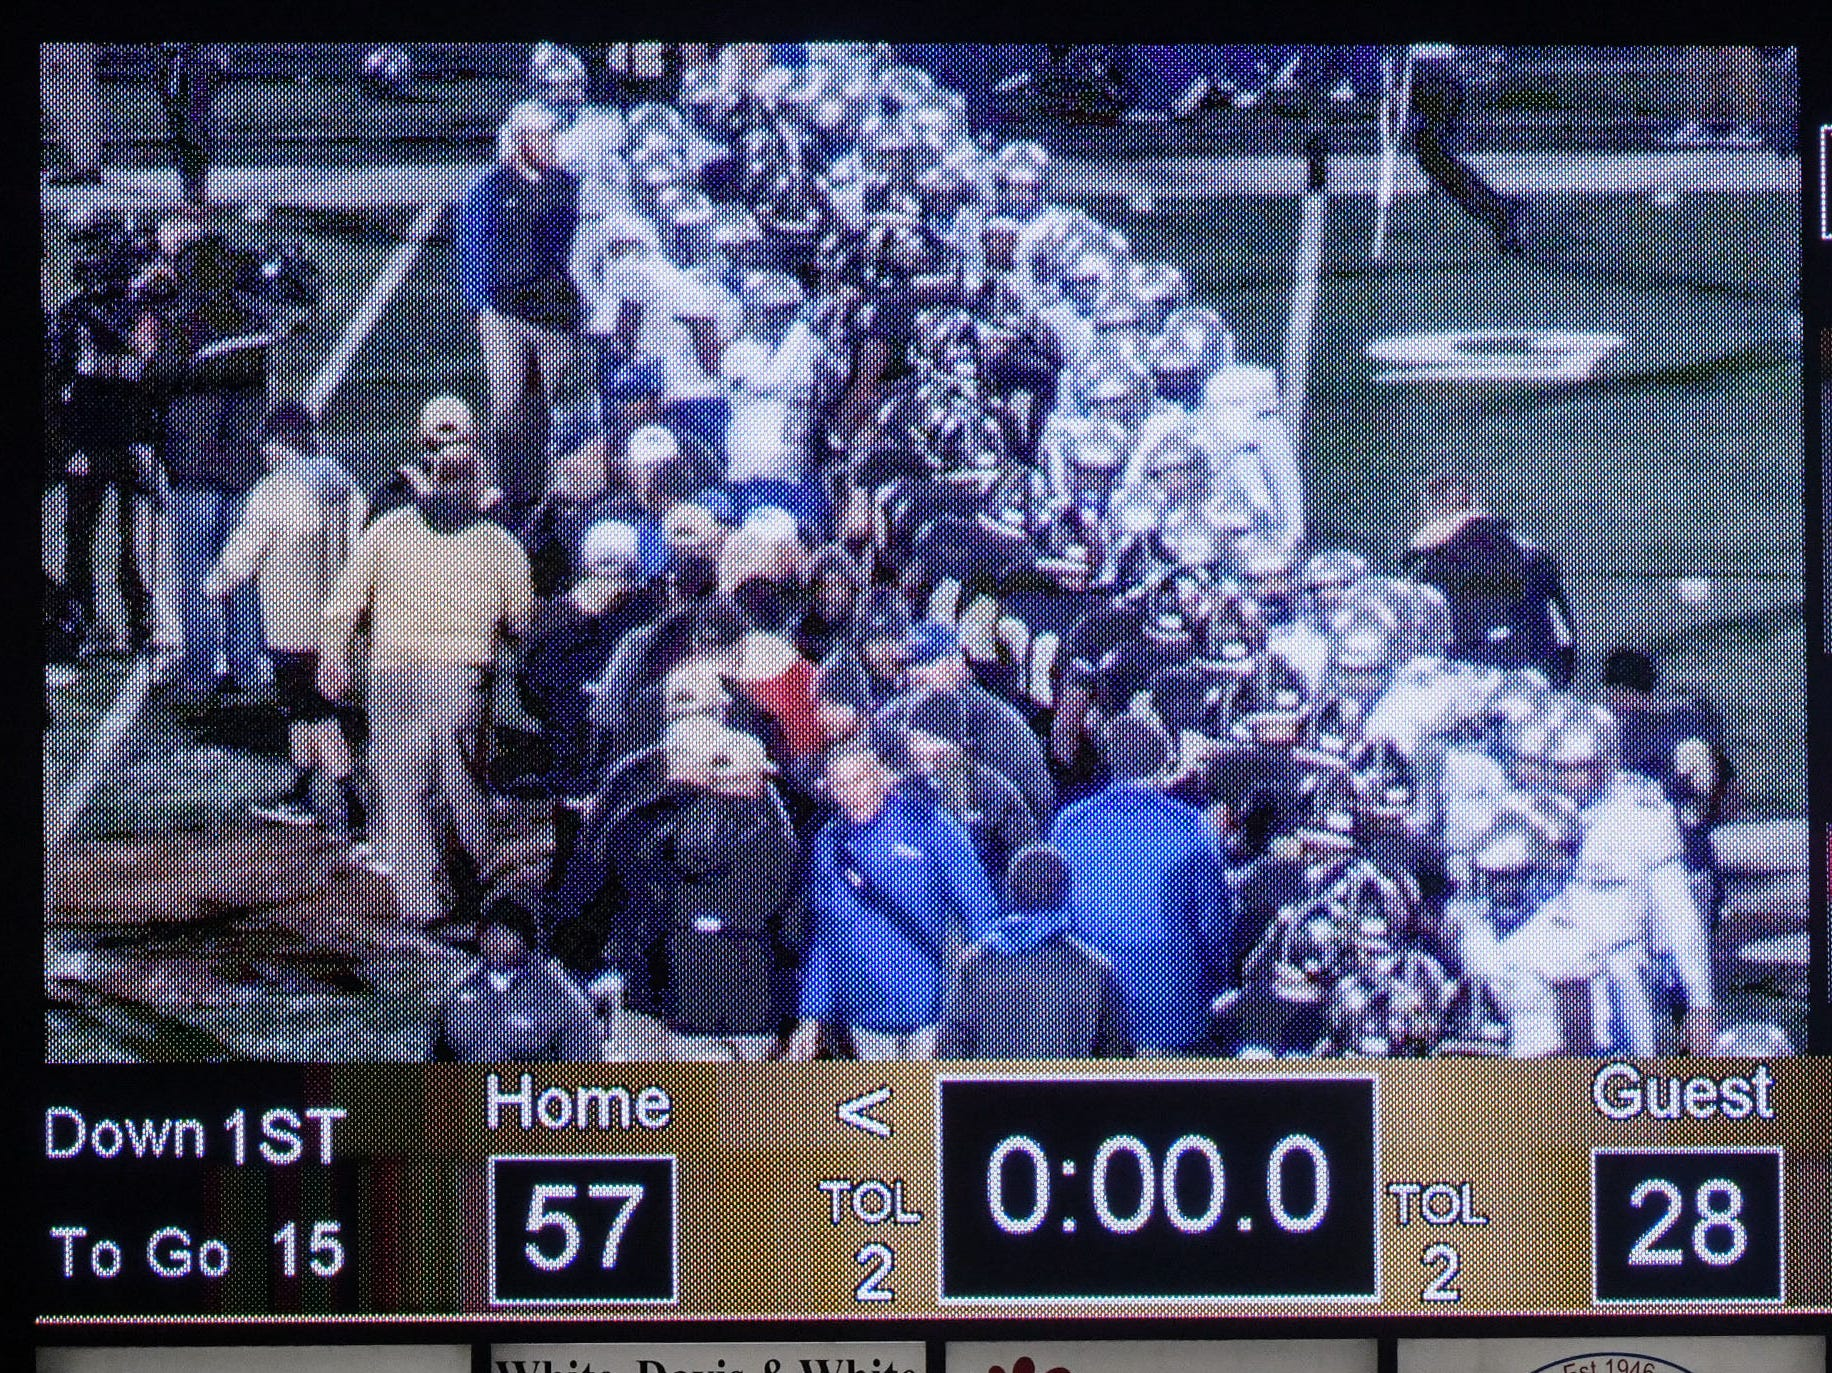 The scoreboard video shows players shaking hands after a 57-28 TL Hanna High School win over Byrnes High School after the game of the Class AAAAA state playoffs at TL Hanna High School in Anderson on Friday, November 30, 2018.